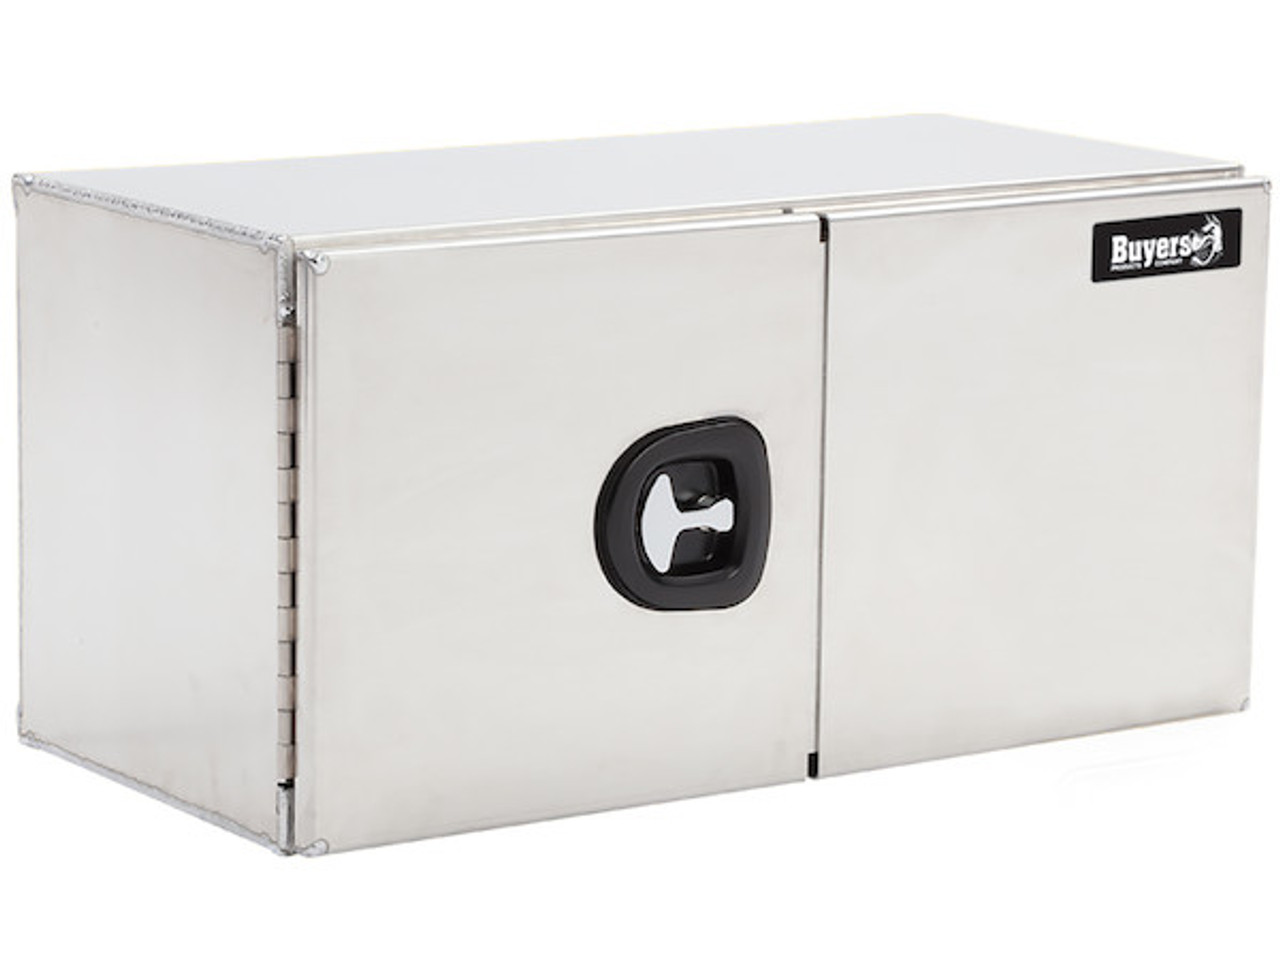 "1705340 BUYERS PRODUCTS SMOOTH ALUMINUM UNDERBODY TOOLBOX WITH BARN DOOR 24""HX24""DX48""W"